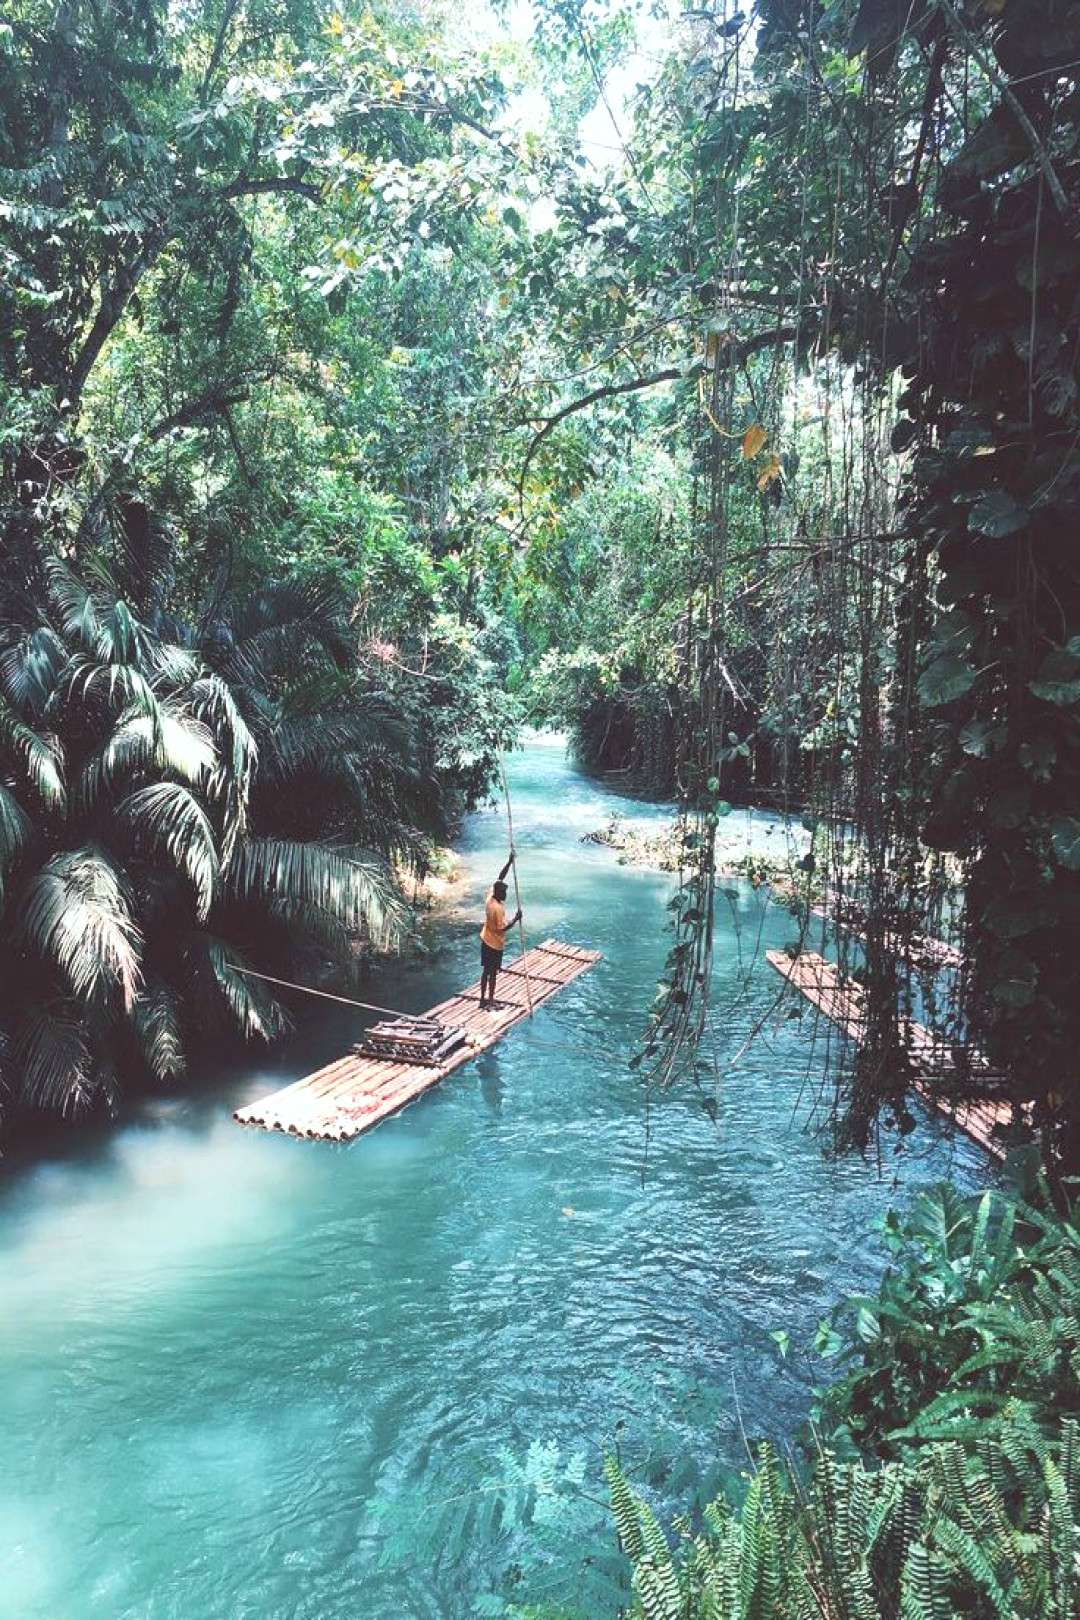 Like something out of Jungle Book on the other side of the world - it looks like a peaceful way to